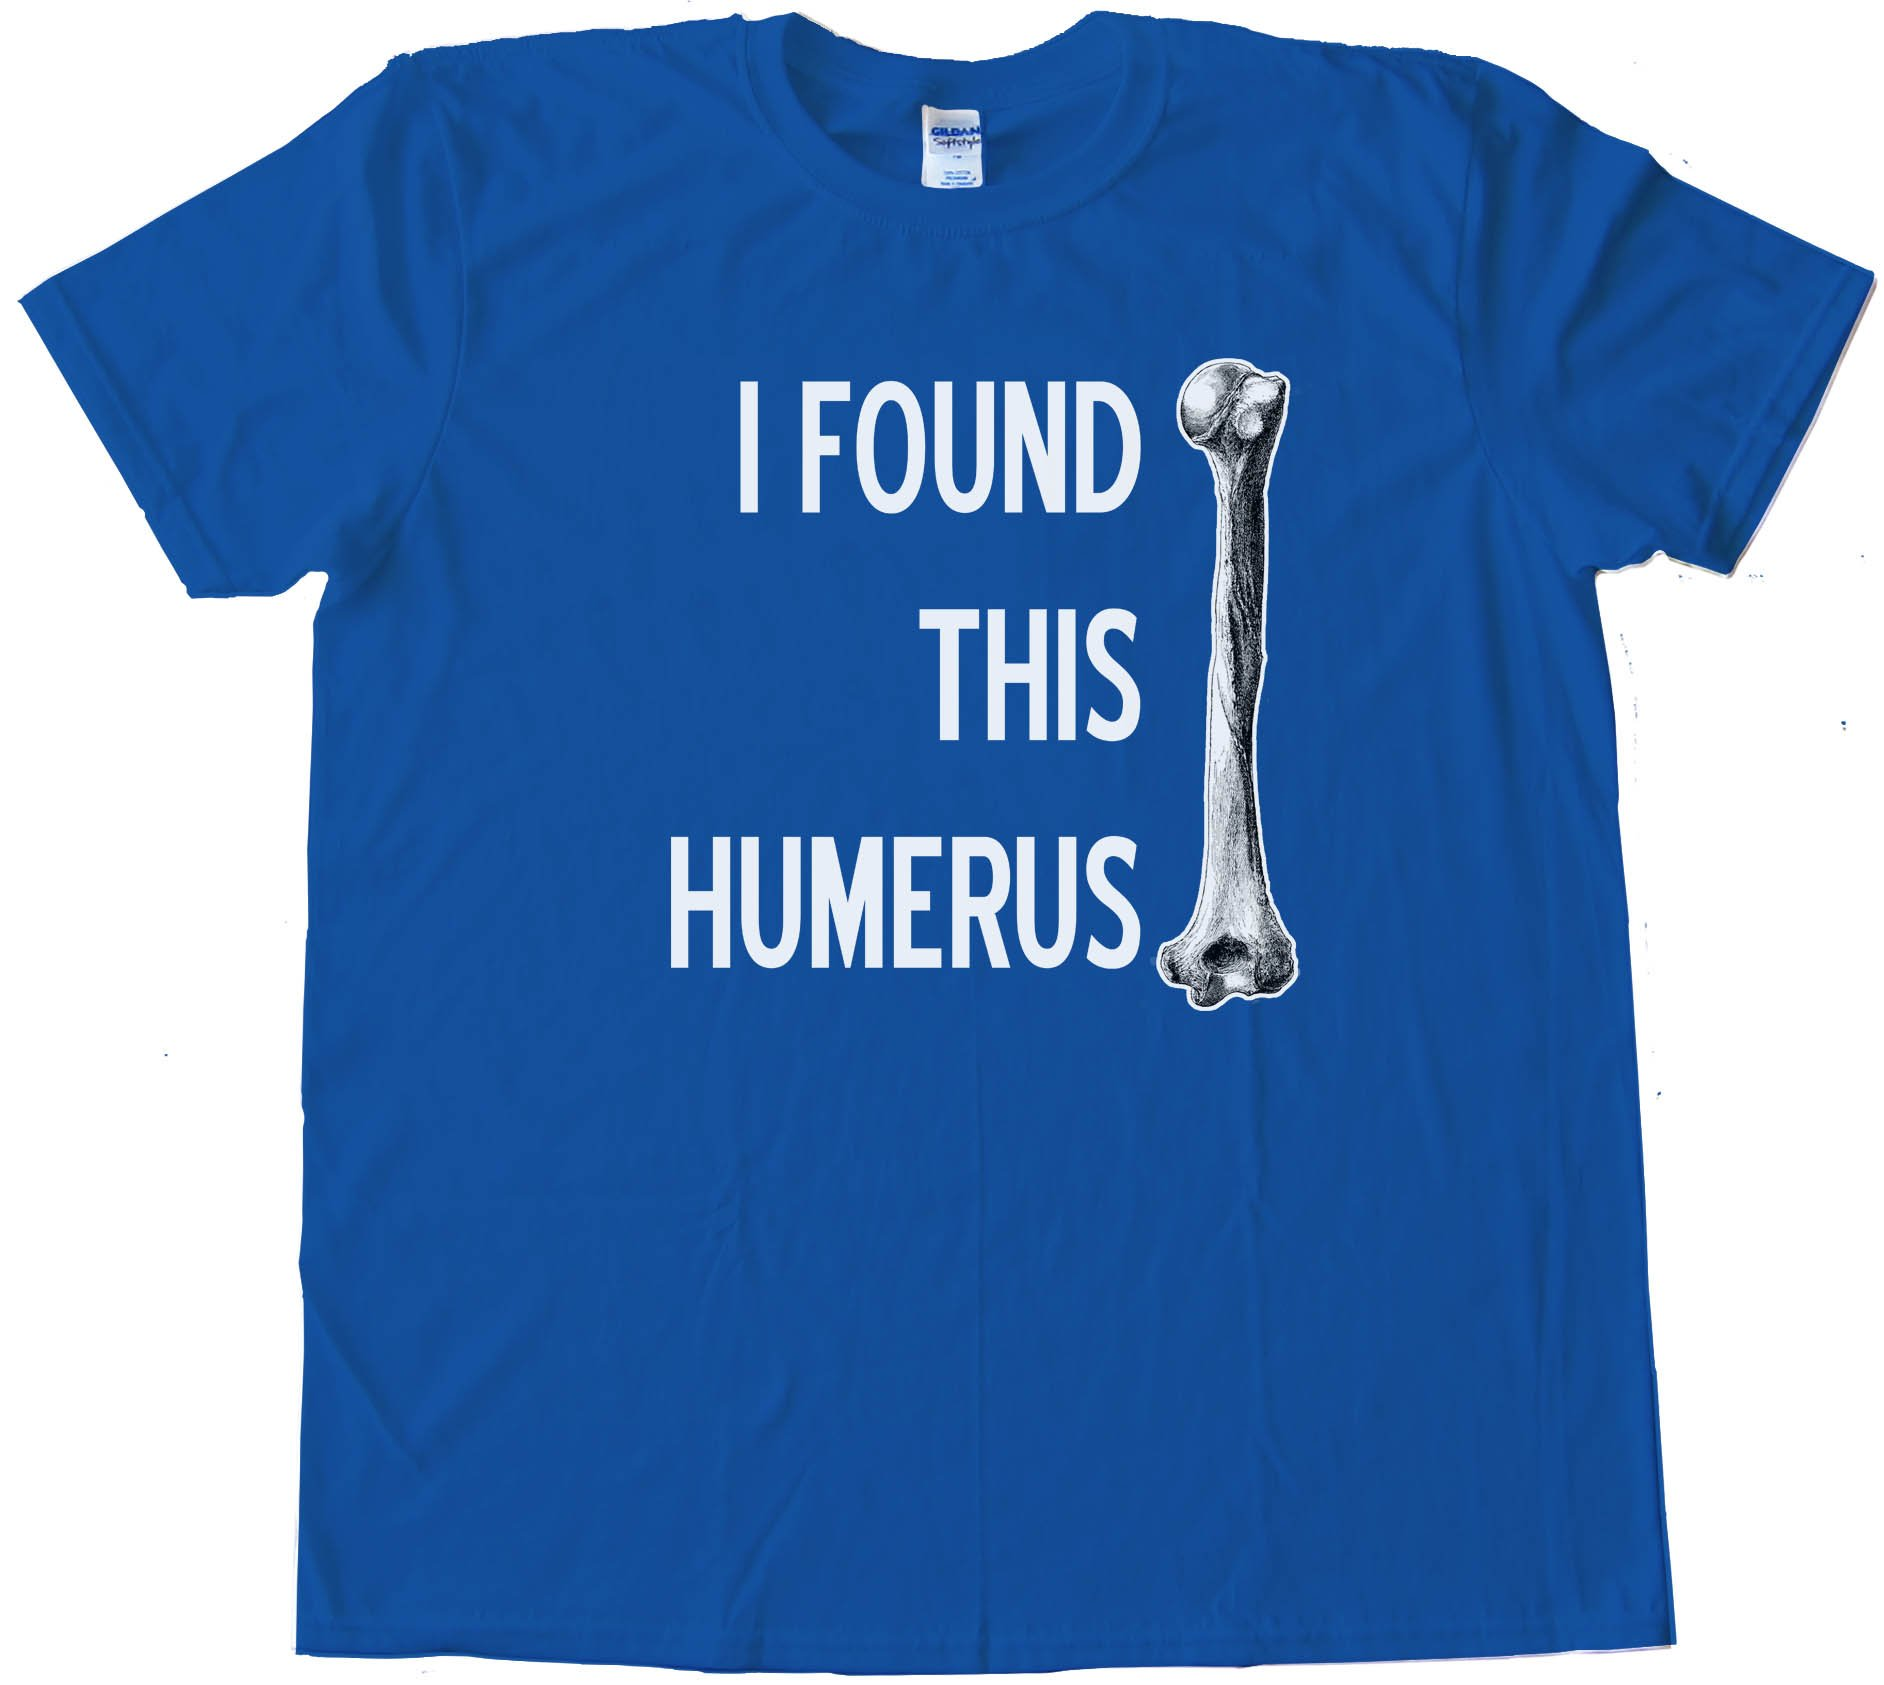 I Found This Humerus -- Tee Shirt